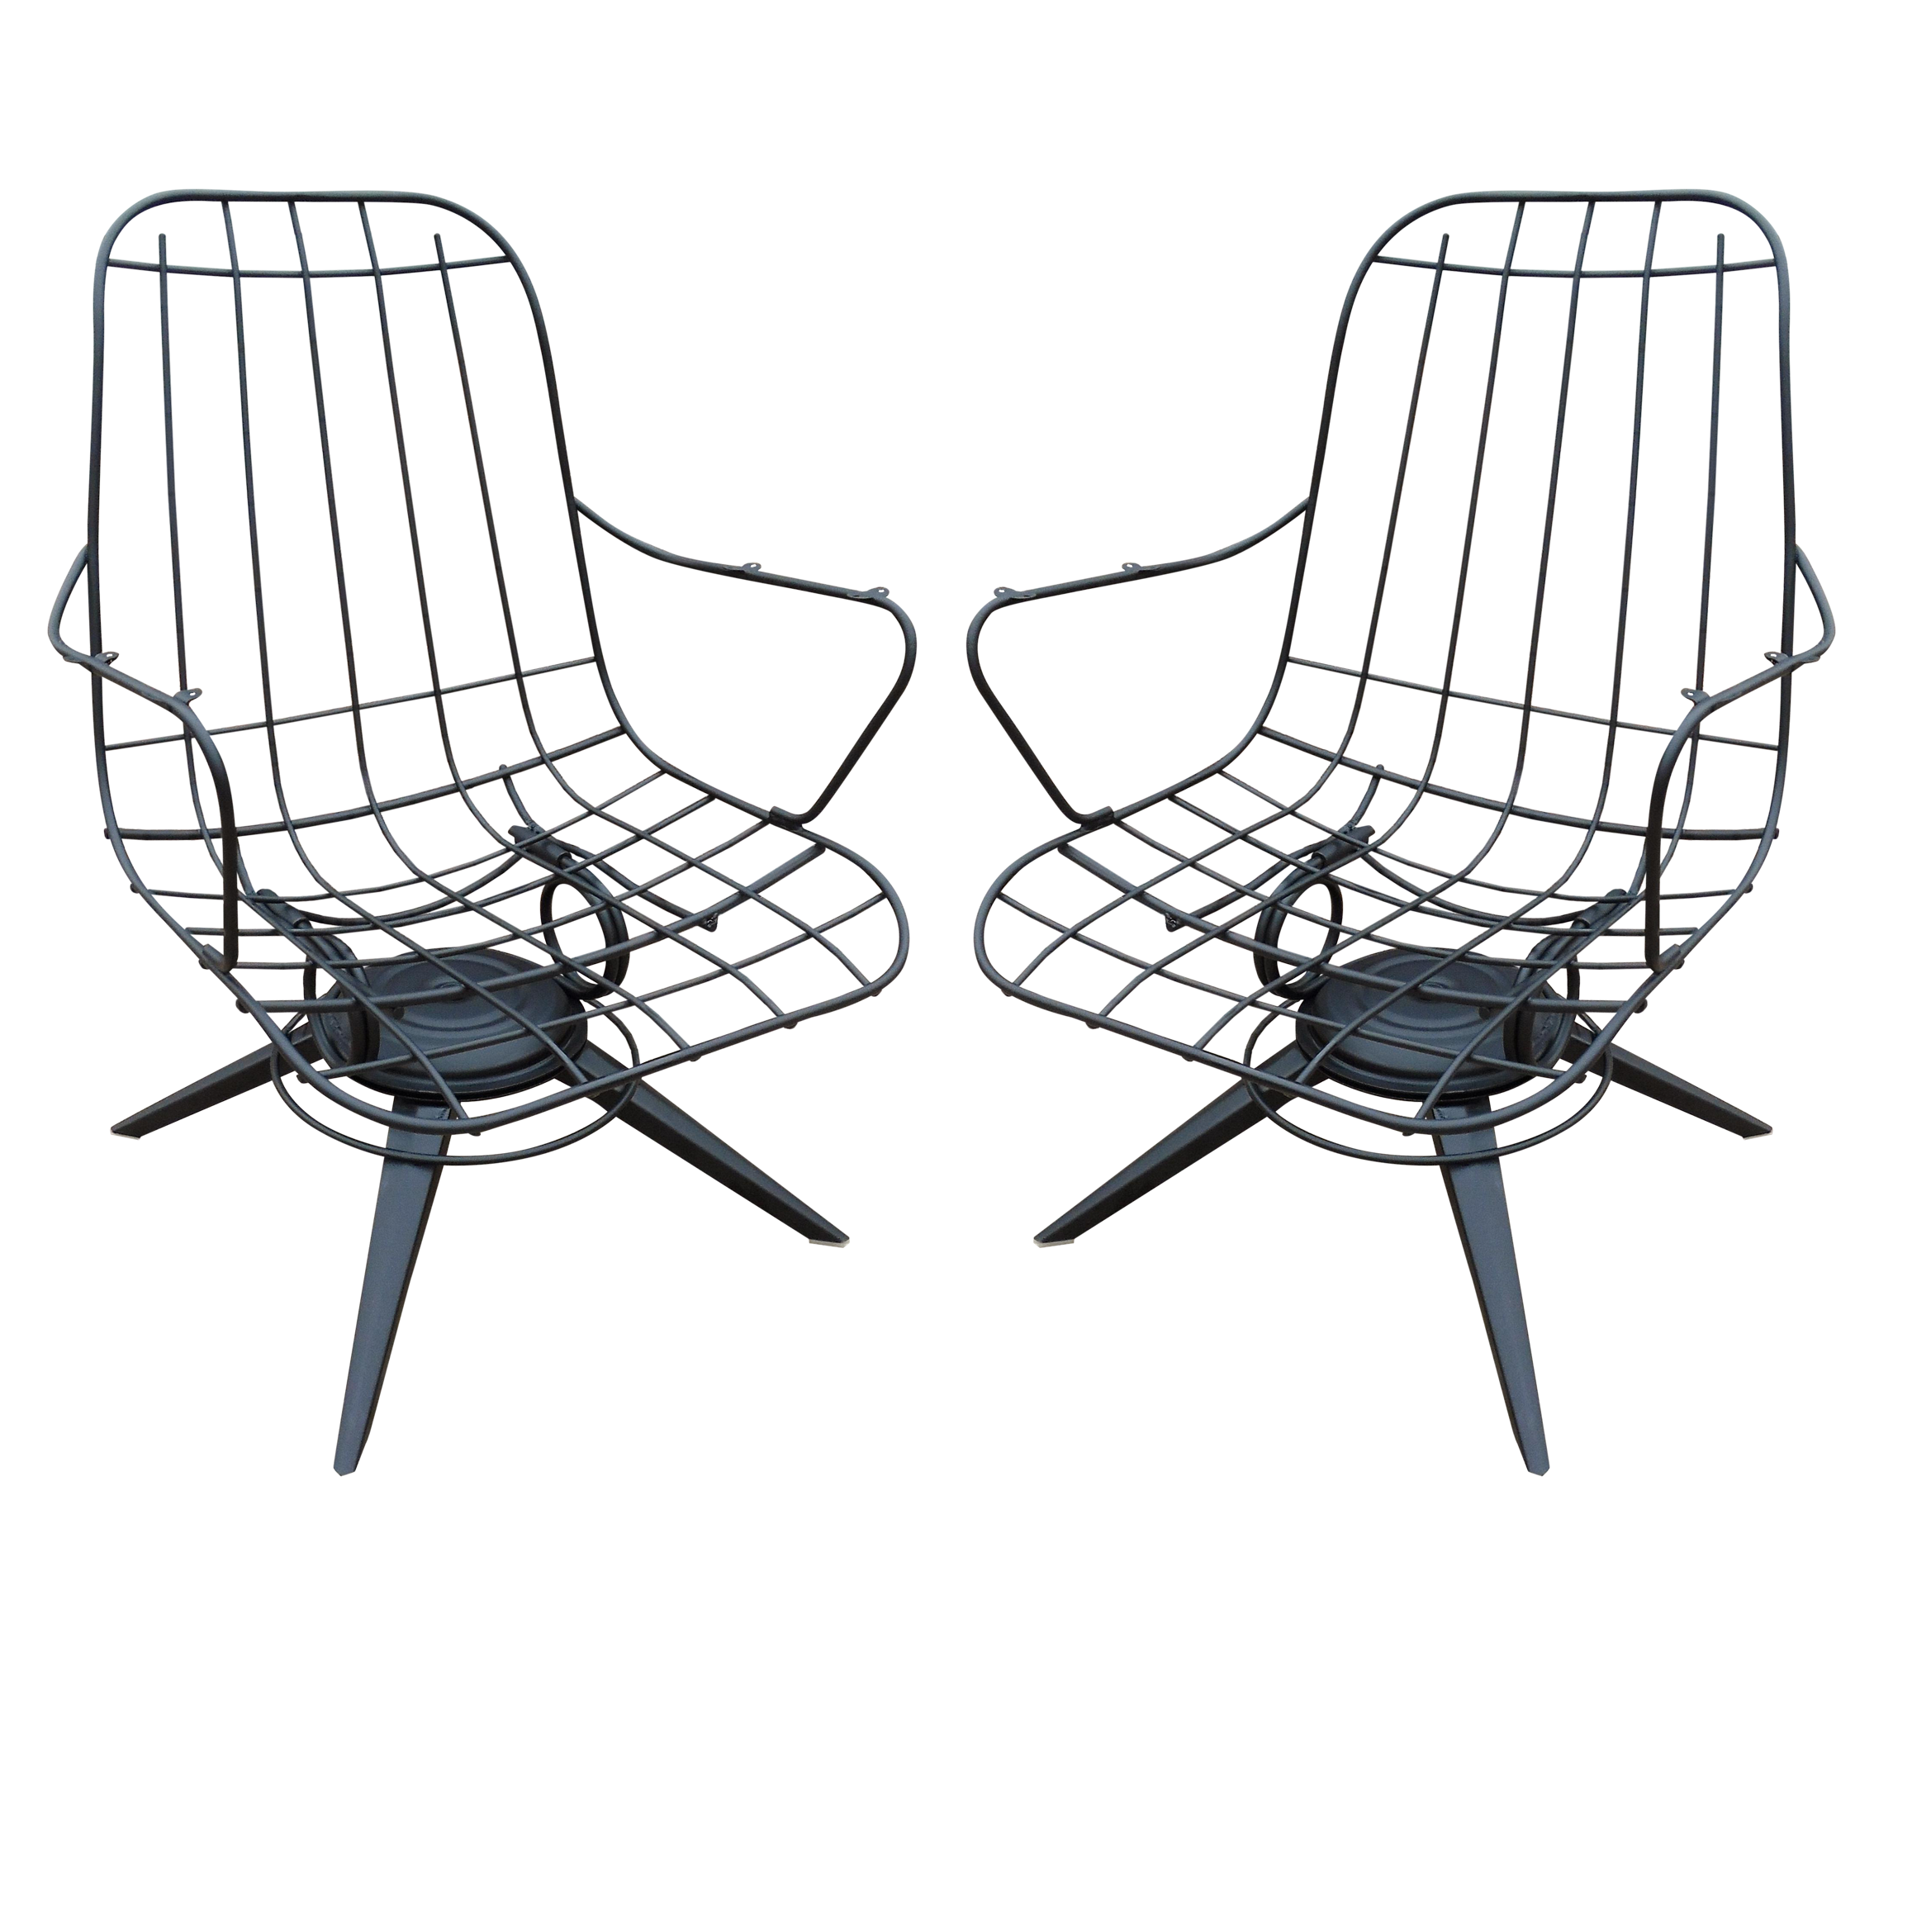 Completely new Homecrest Mid-Century Wire Lounge Chairs - A Pair | Chairish GR16